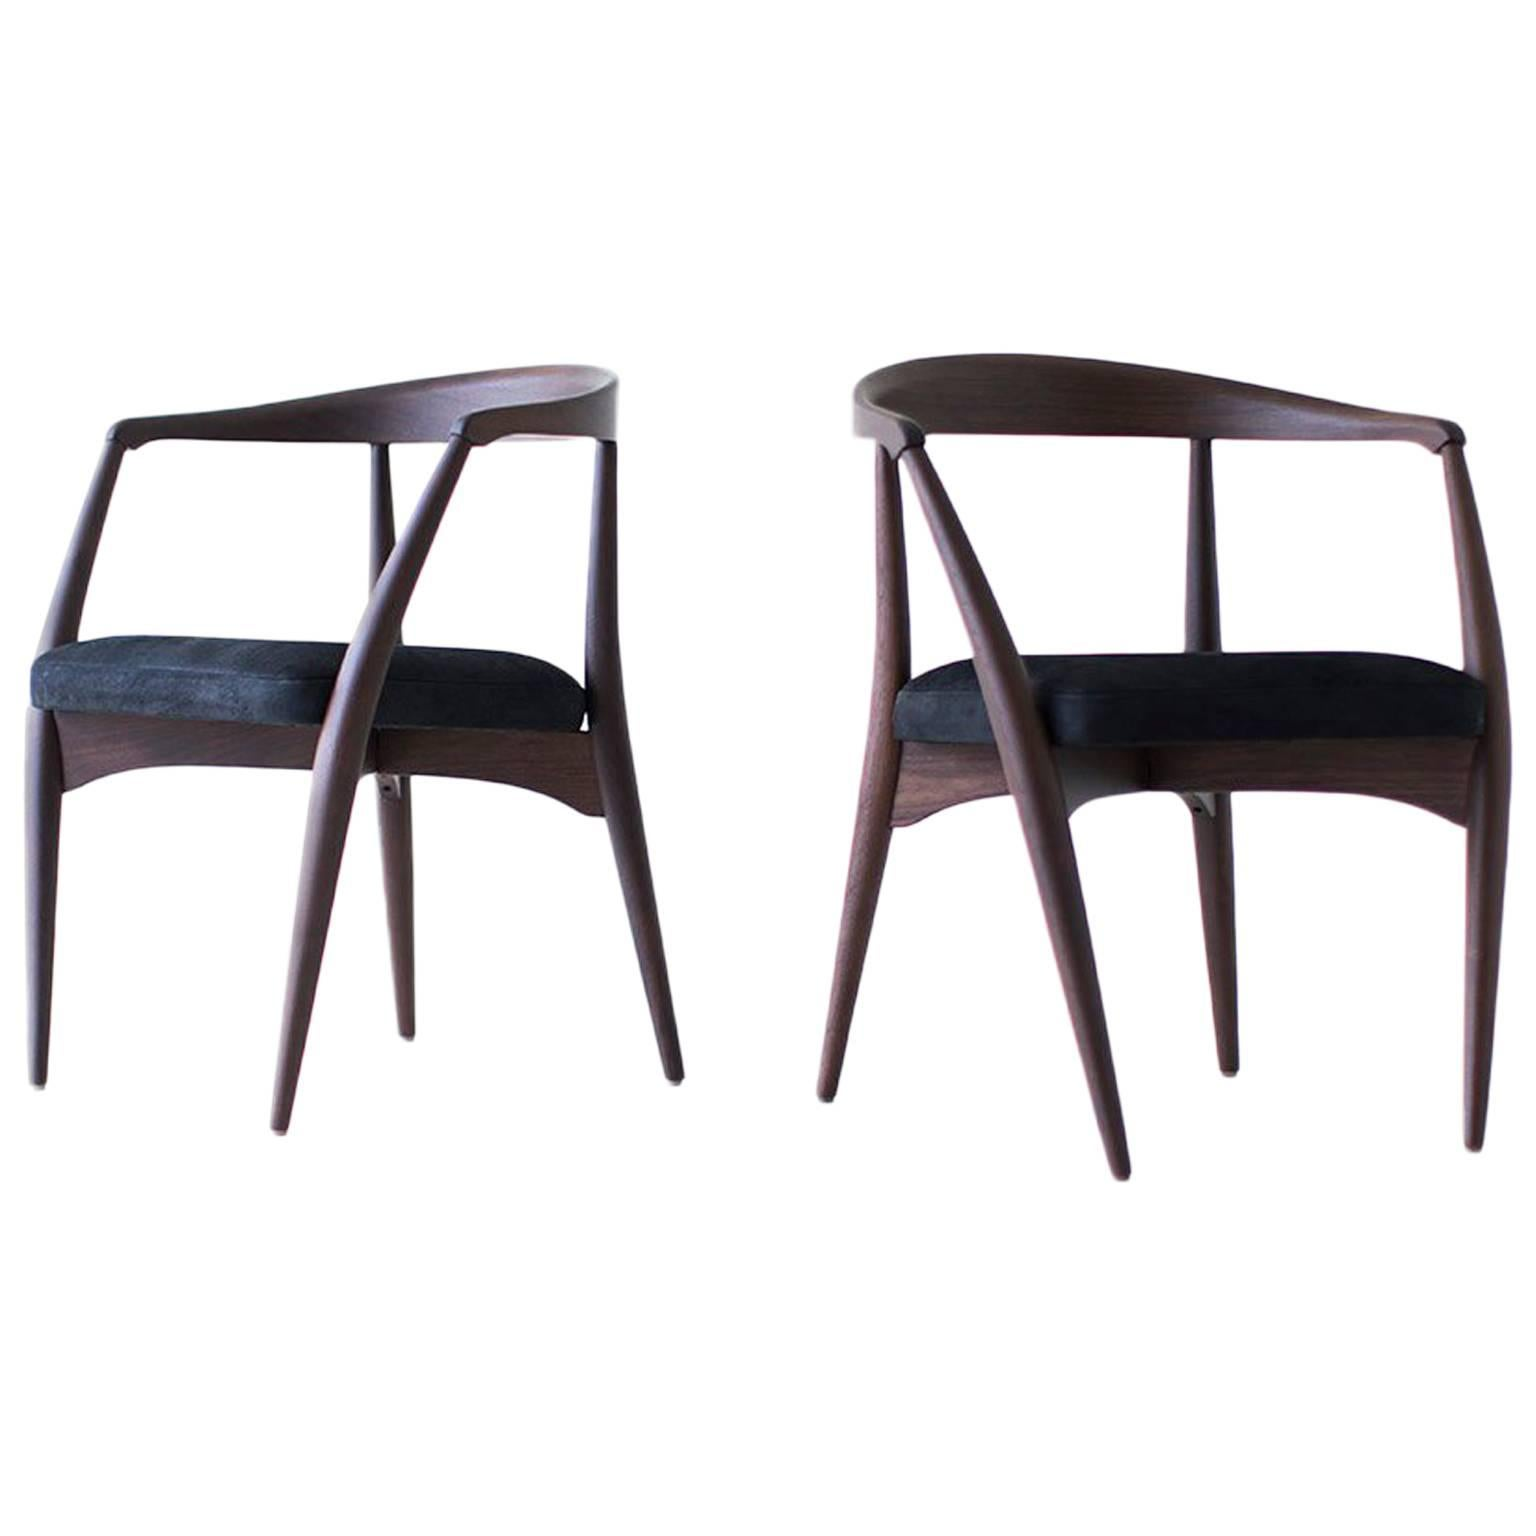 Lawrence Peabody Dining Chairs P-1708, Craft Associates® Furniture